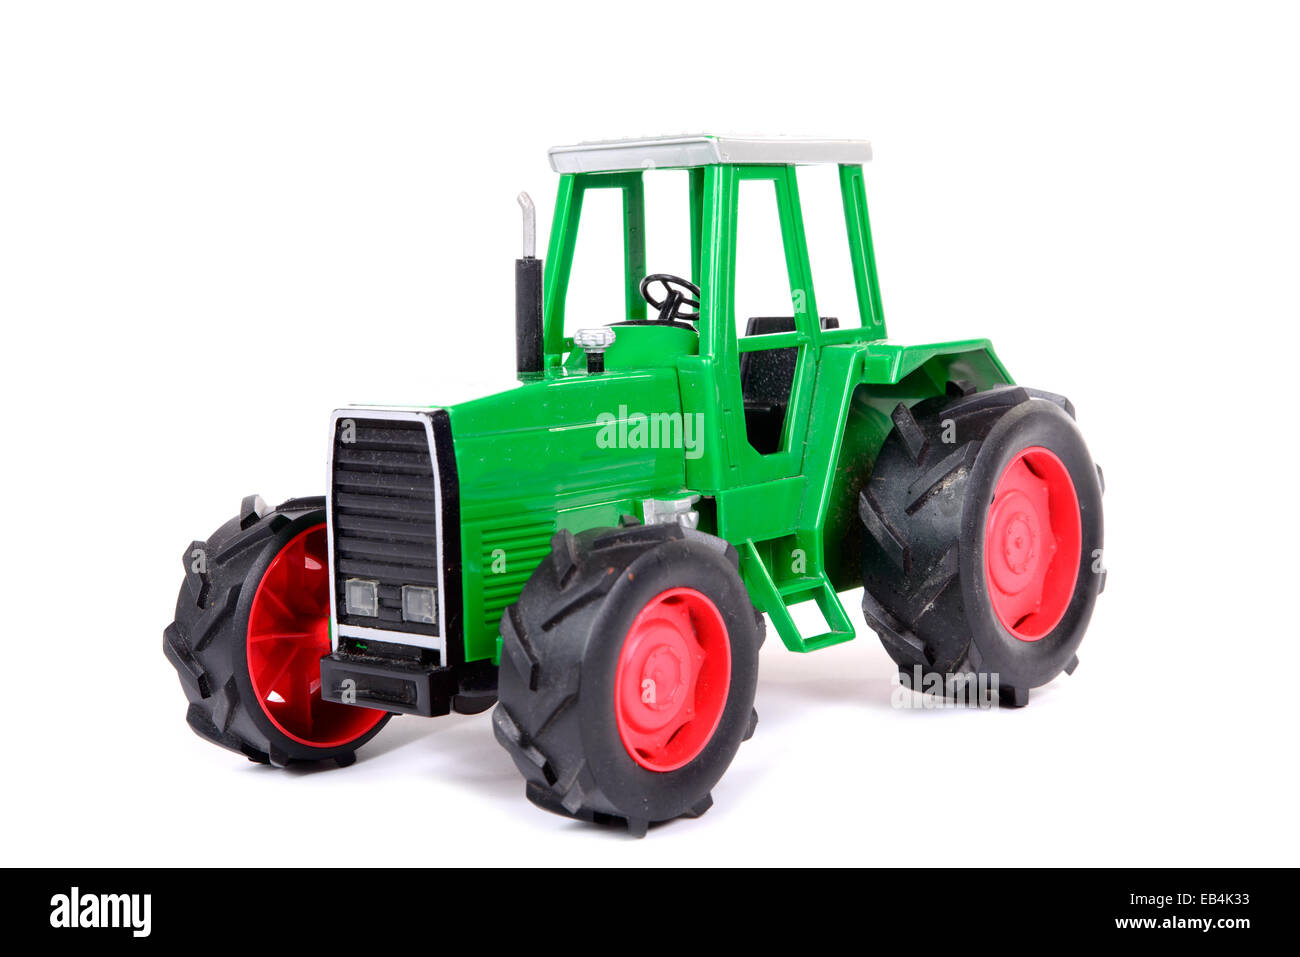 green toy farm tractor on the white background - Stock Image